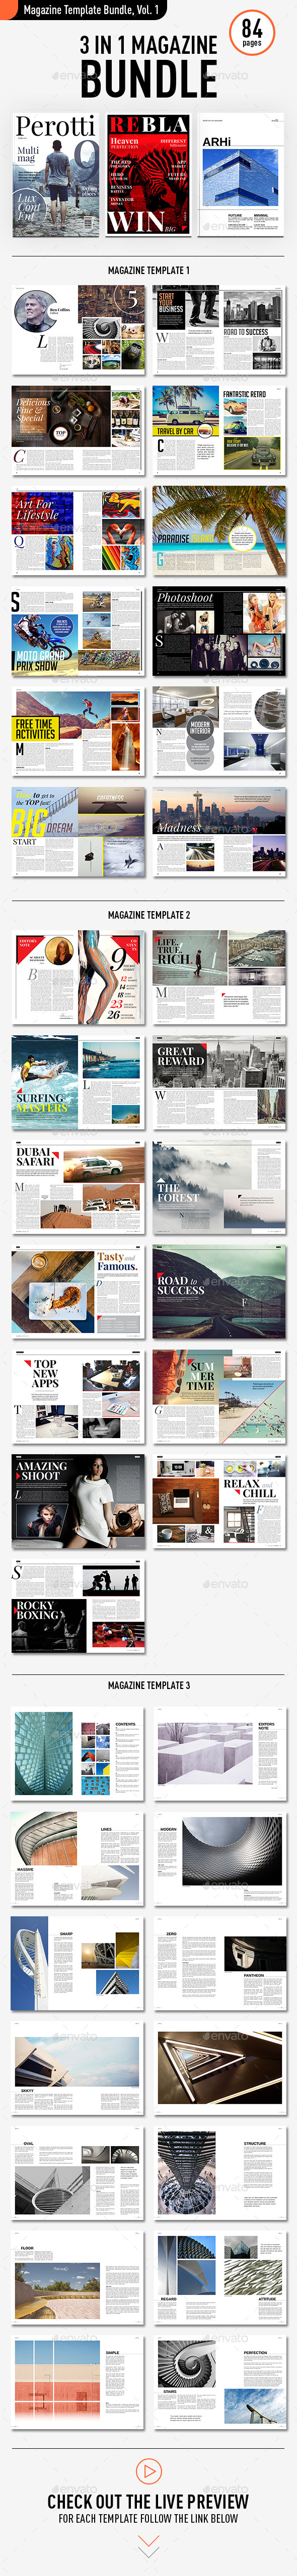 Magazine Template Bundle, Vol. 1 - Magazines Print Templates